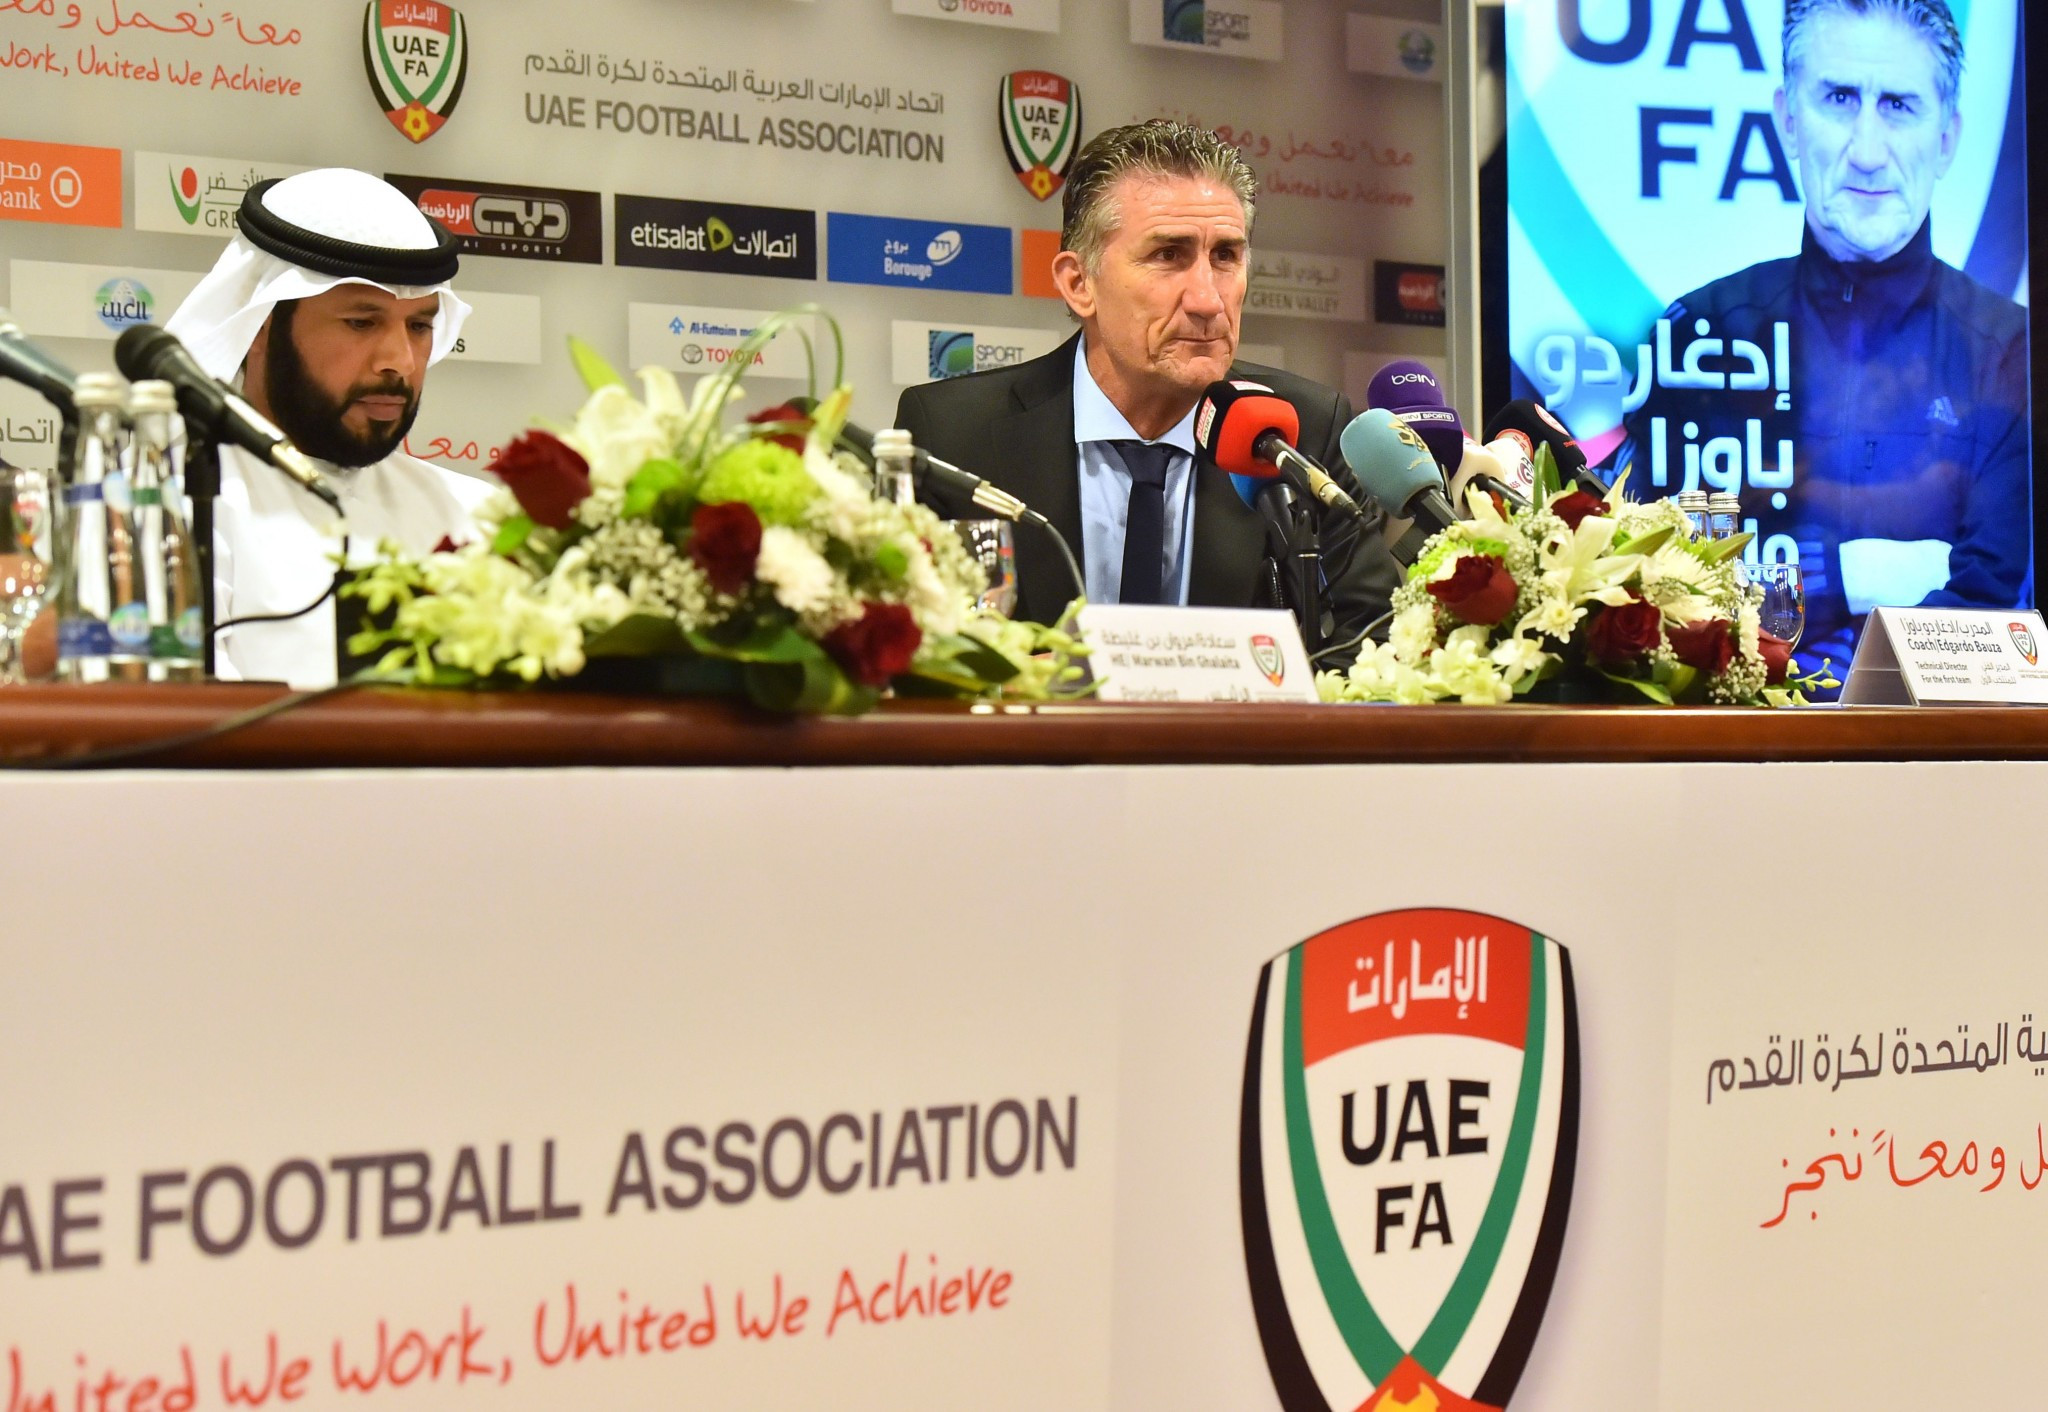 The UAEFA made a request to switch the World Cup qualifier ©Getty Images